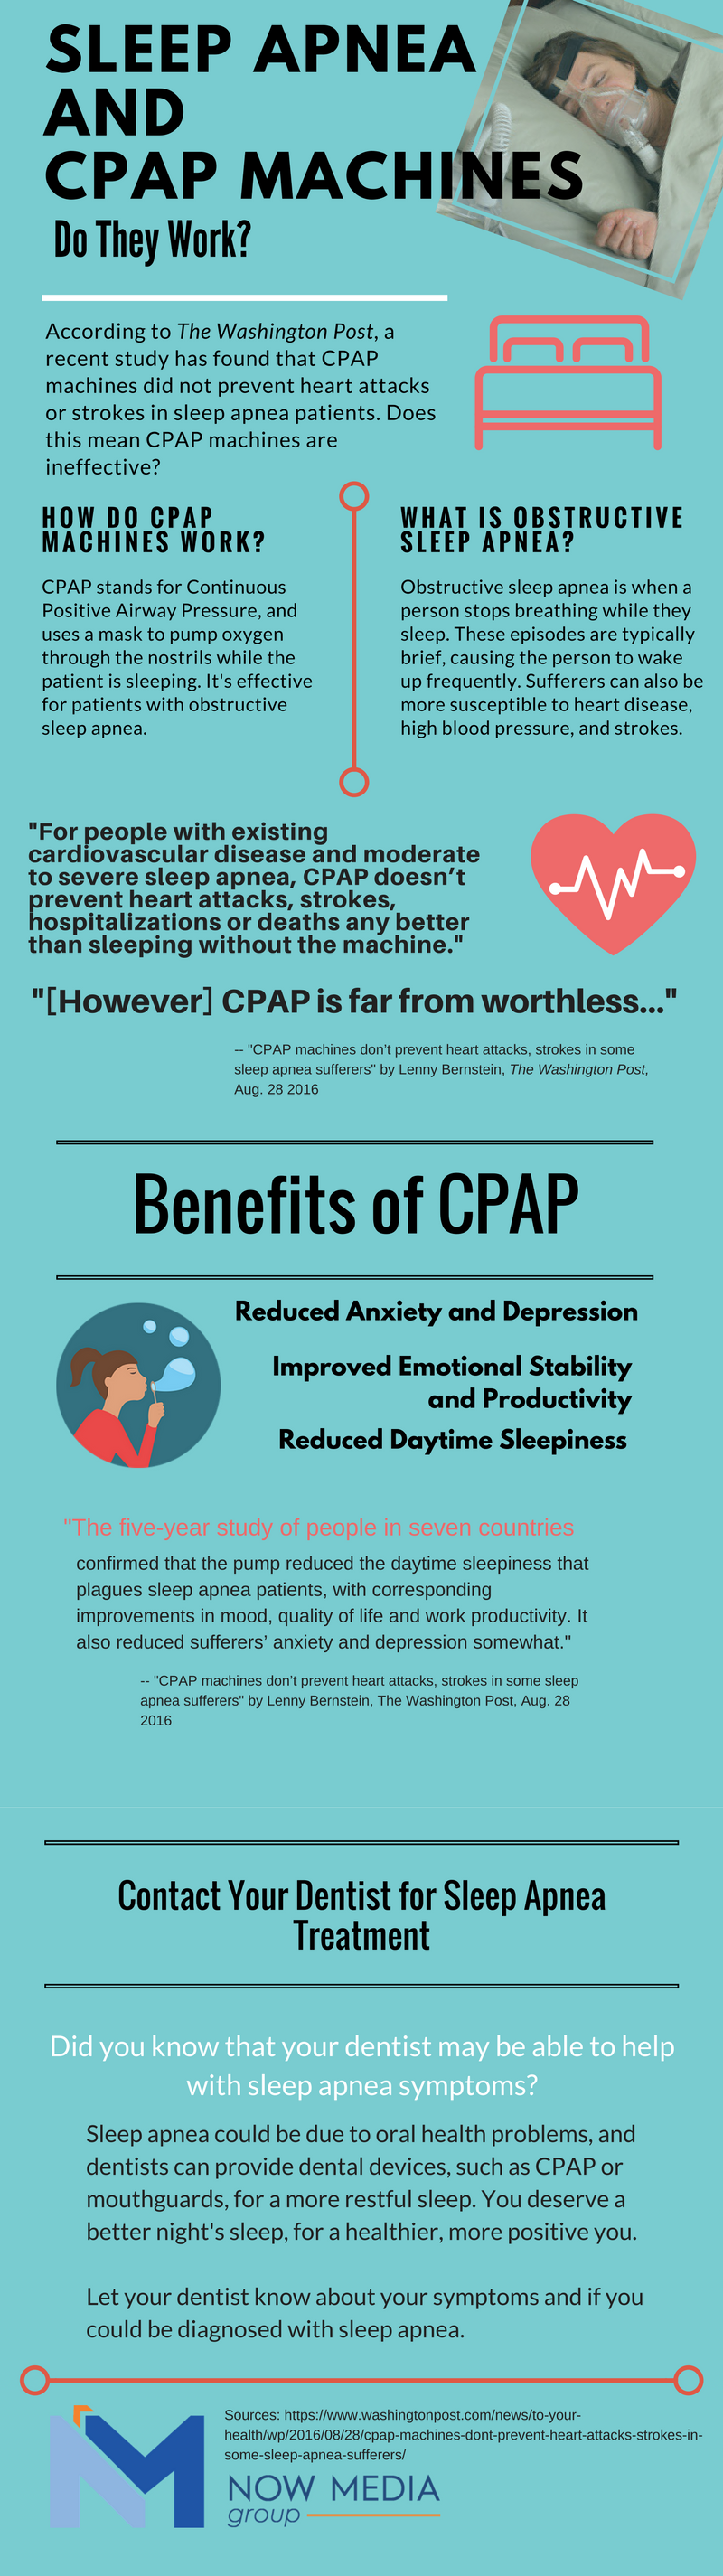 An infographic about CPAP machines